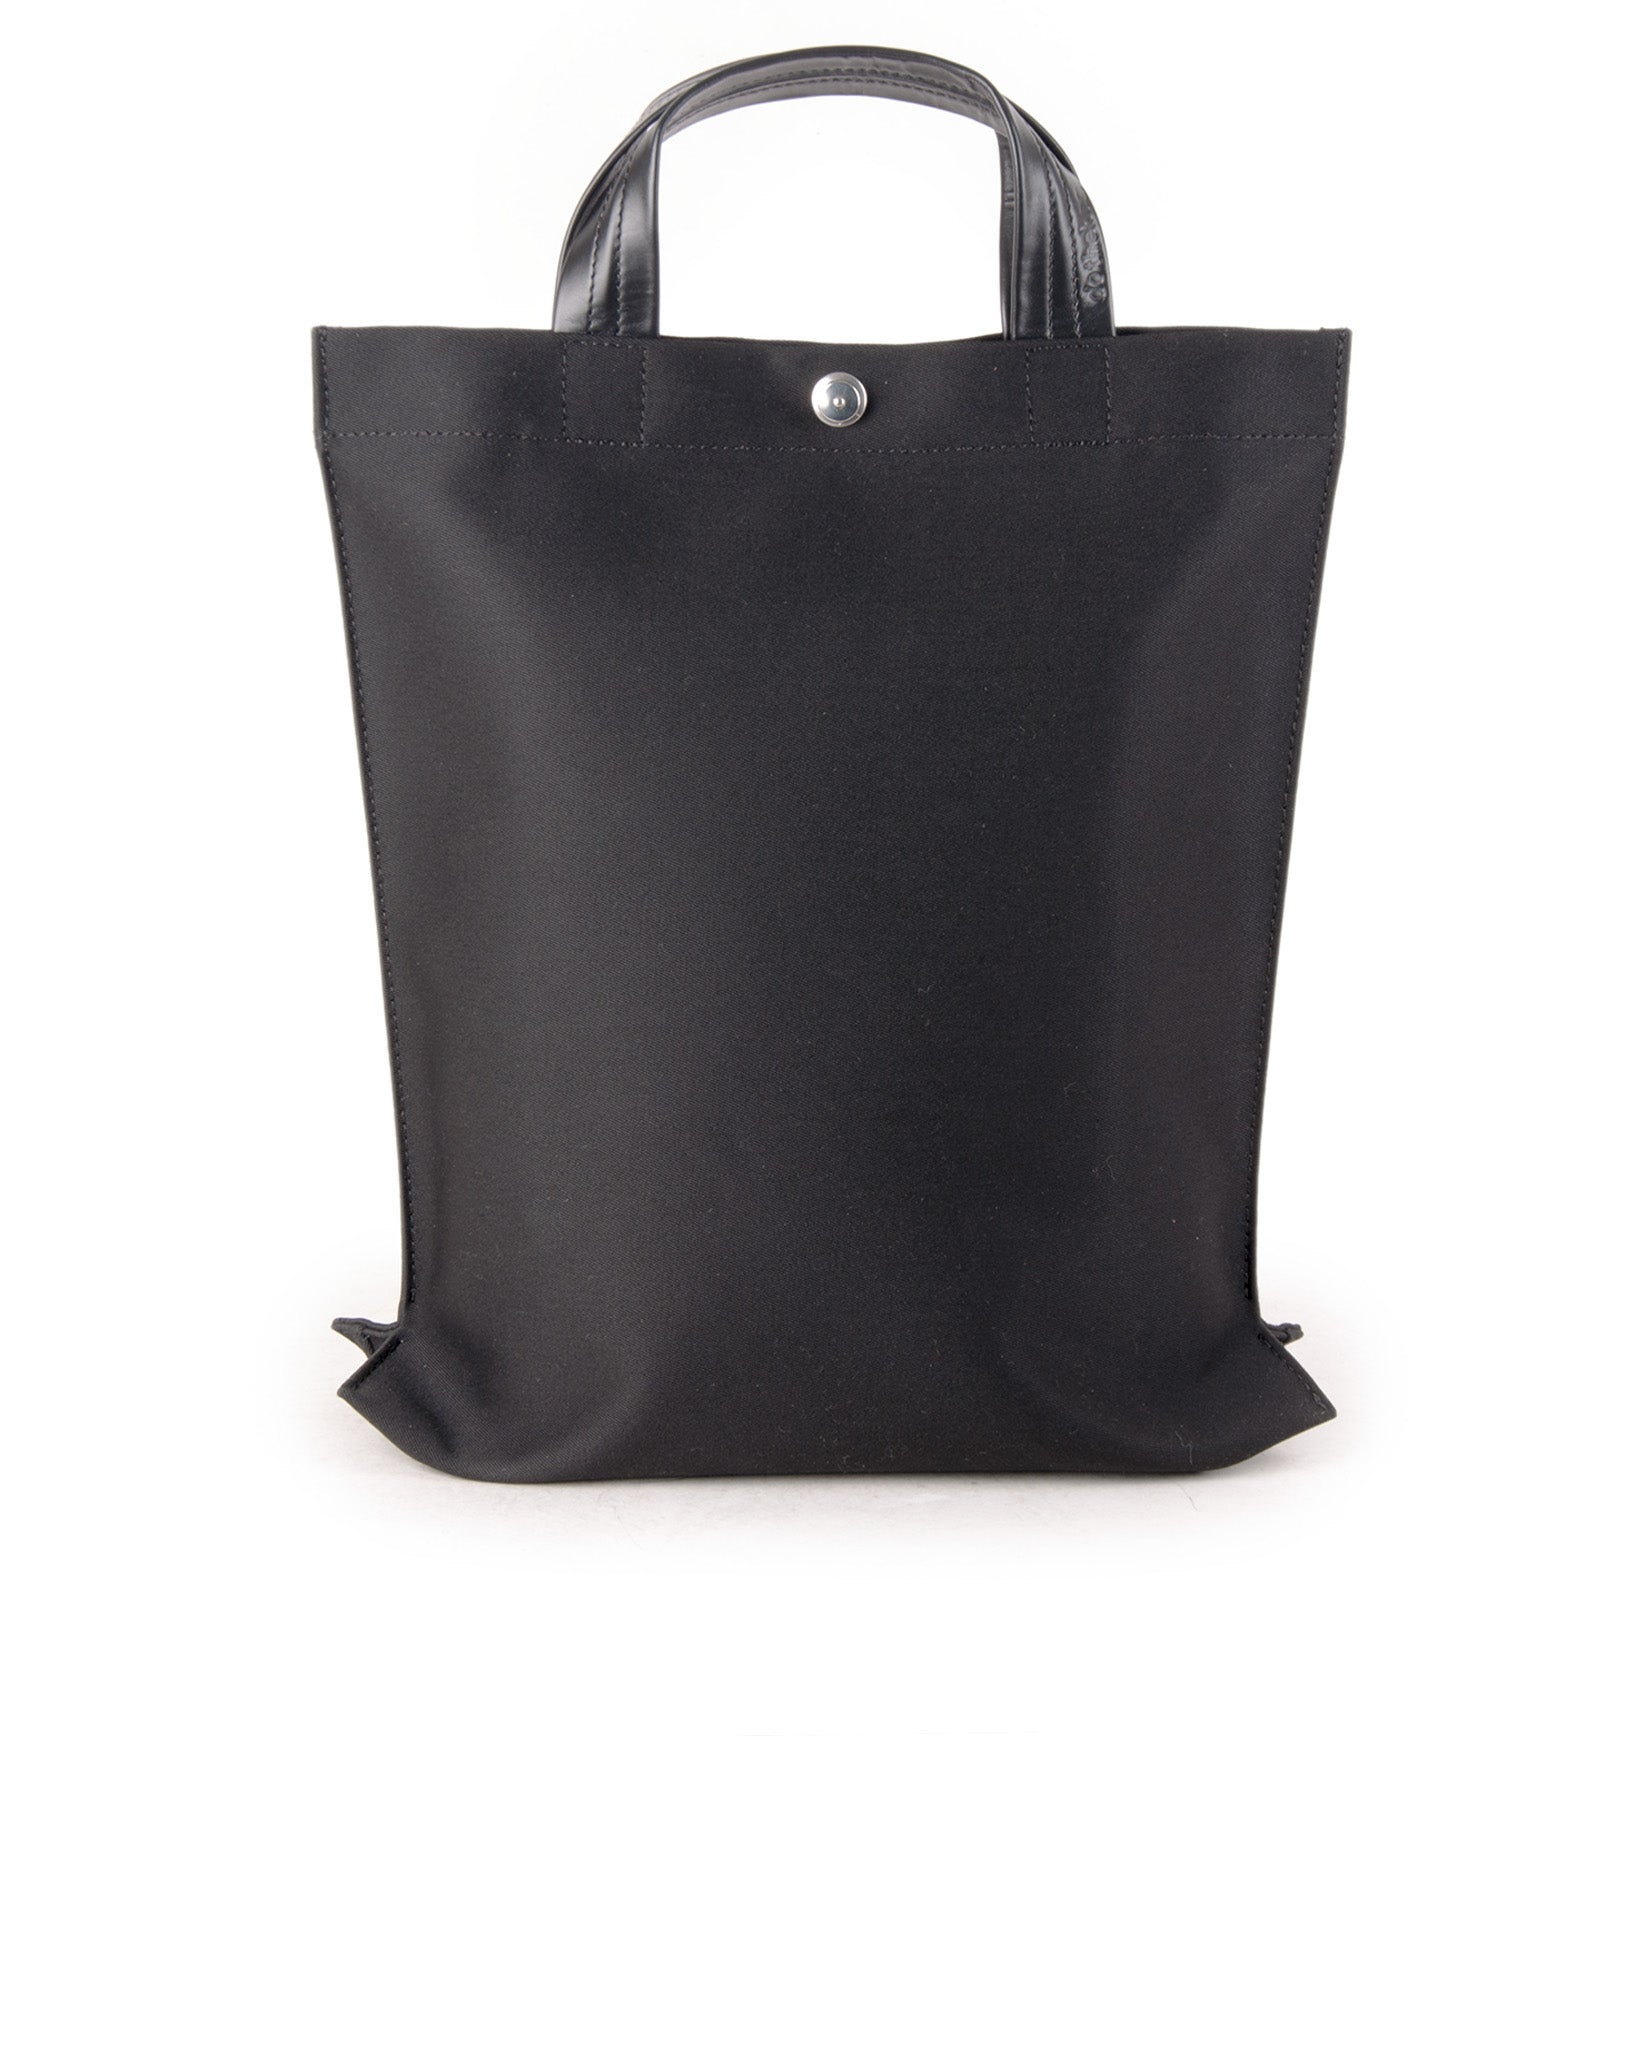 cubicbag shopping bag